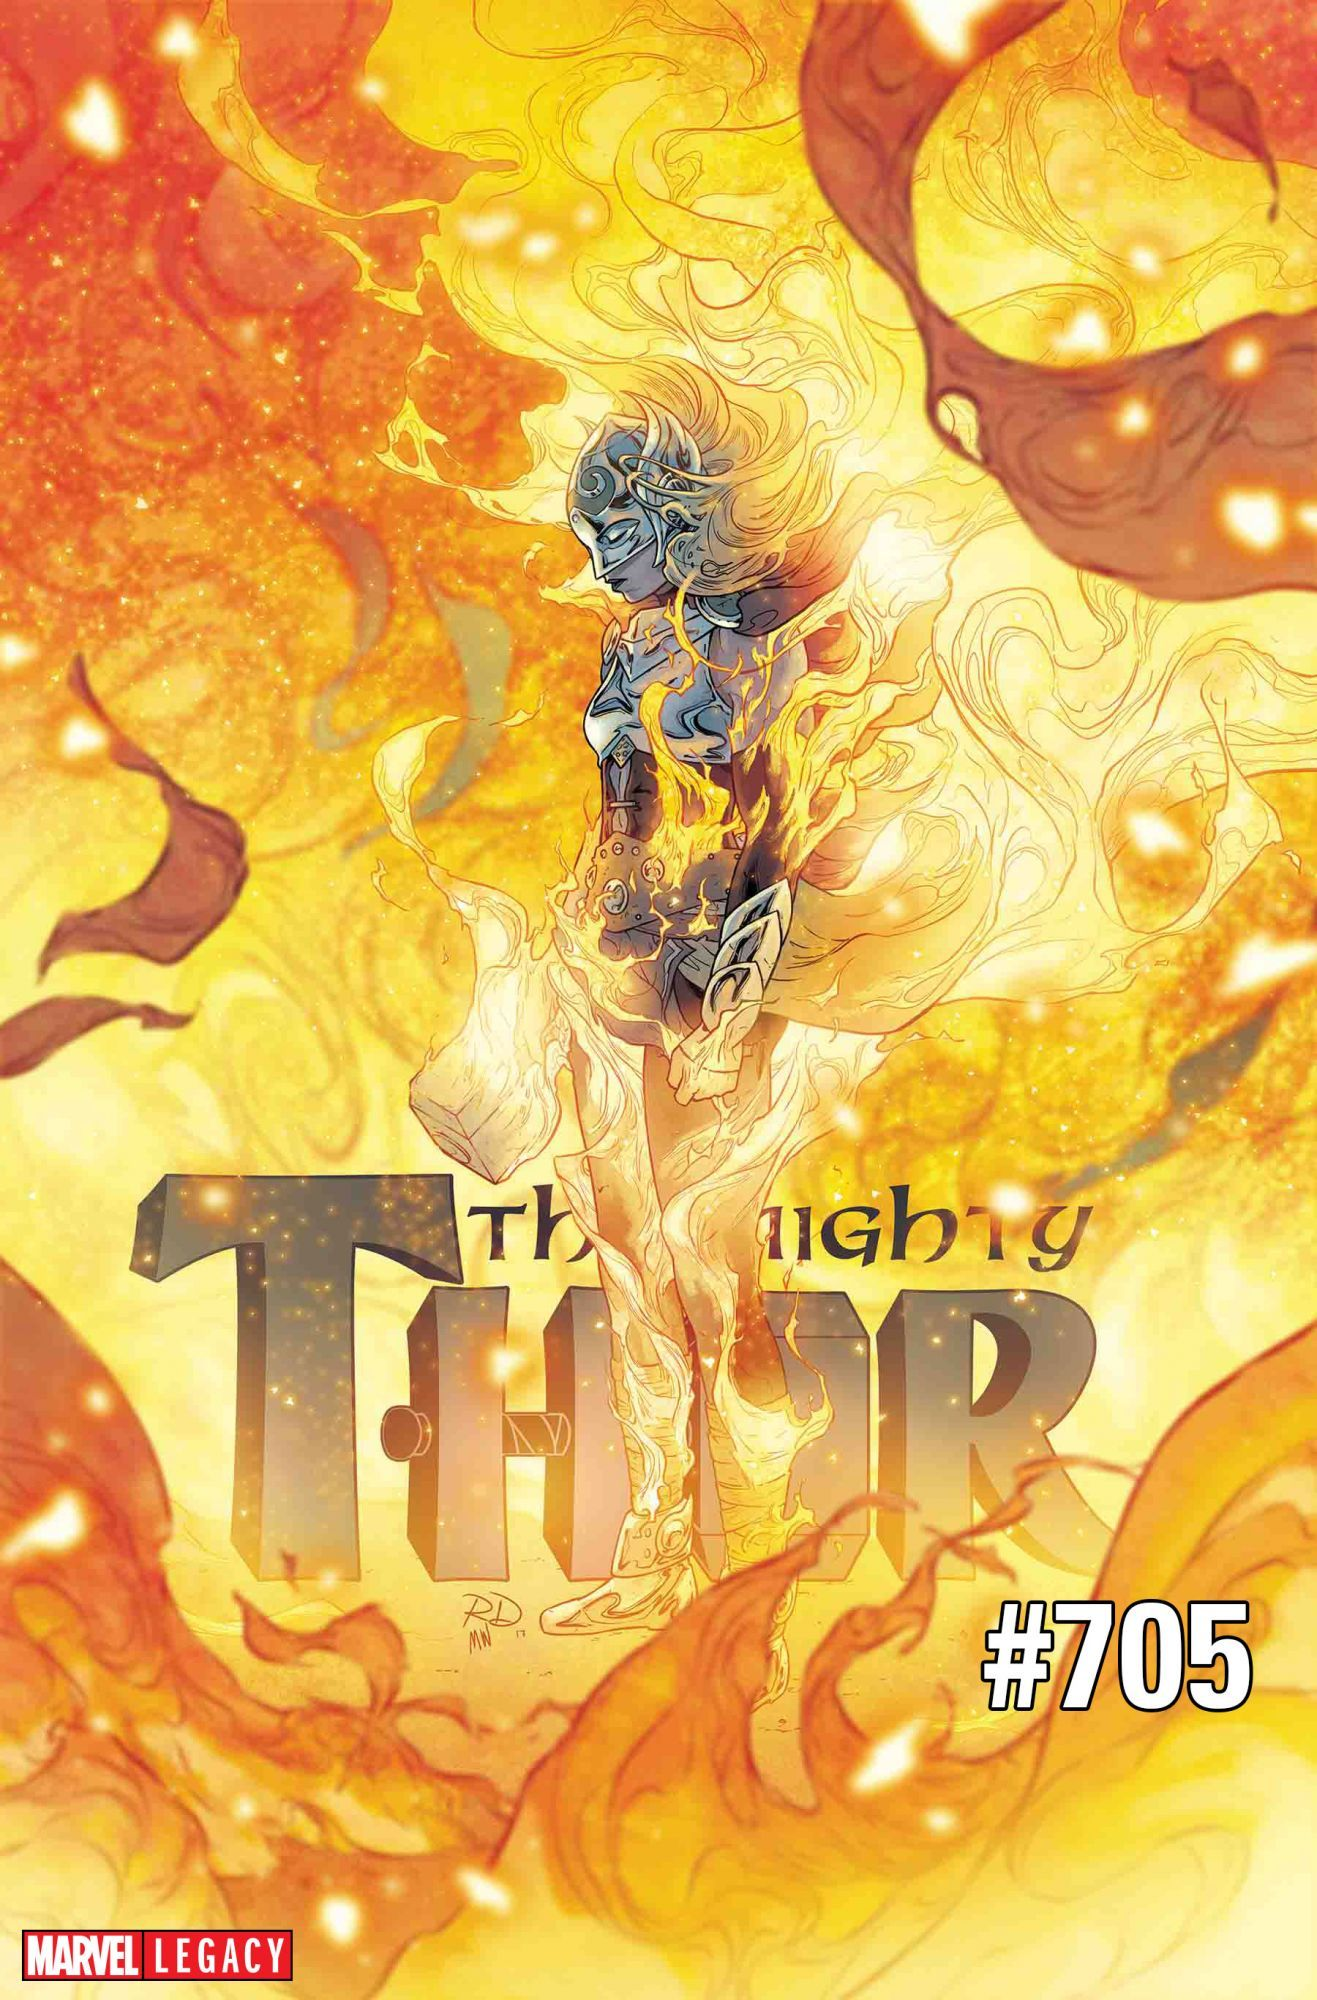 Marvel Promising Shocking Twist in Death of the Mighty Thor Storyline in Thor #705